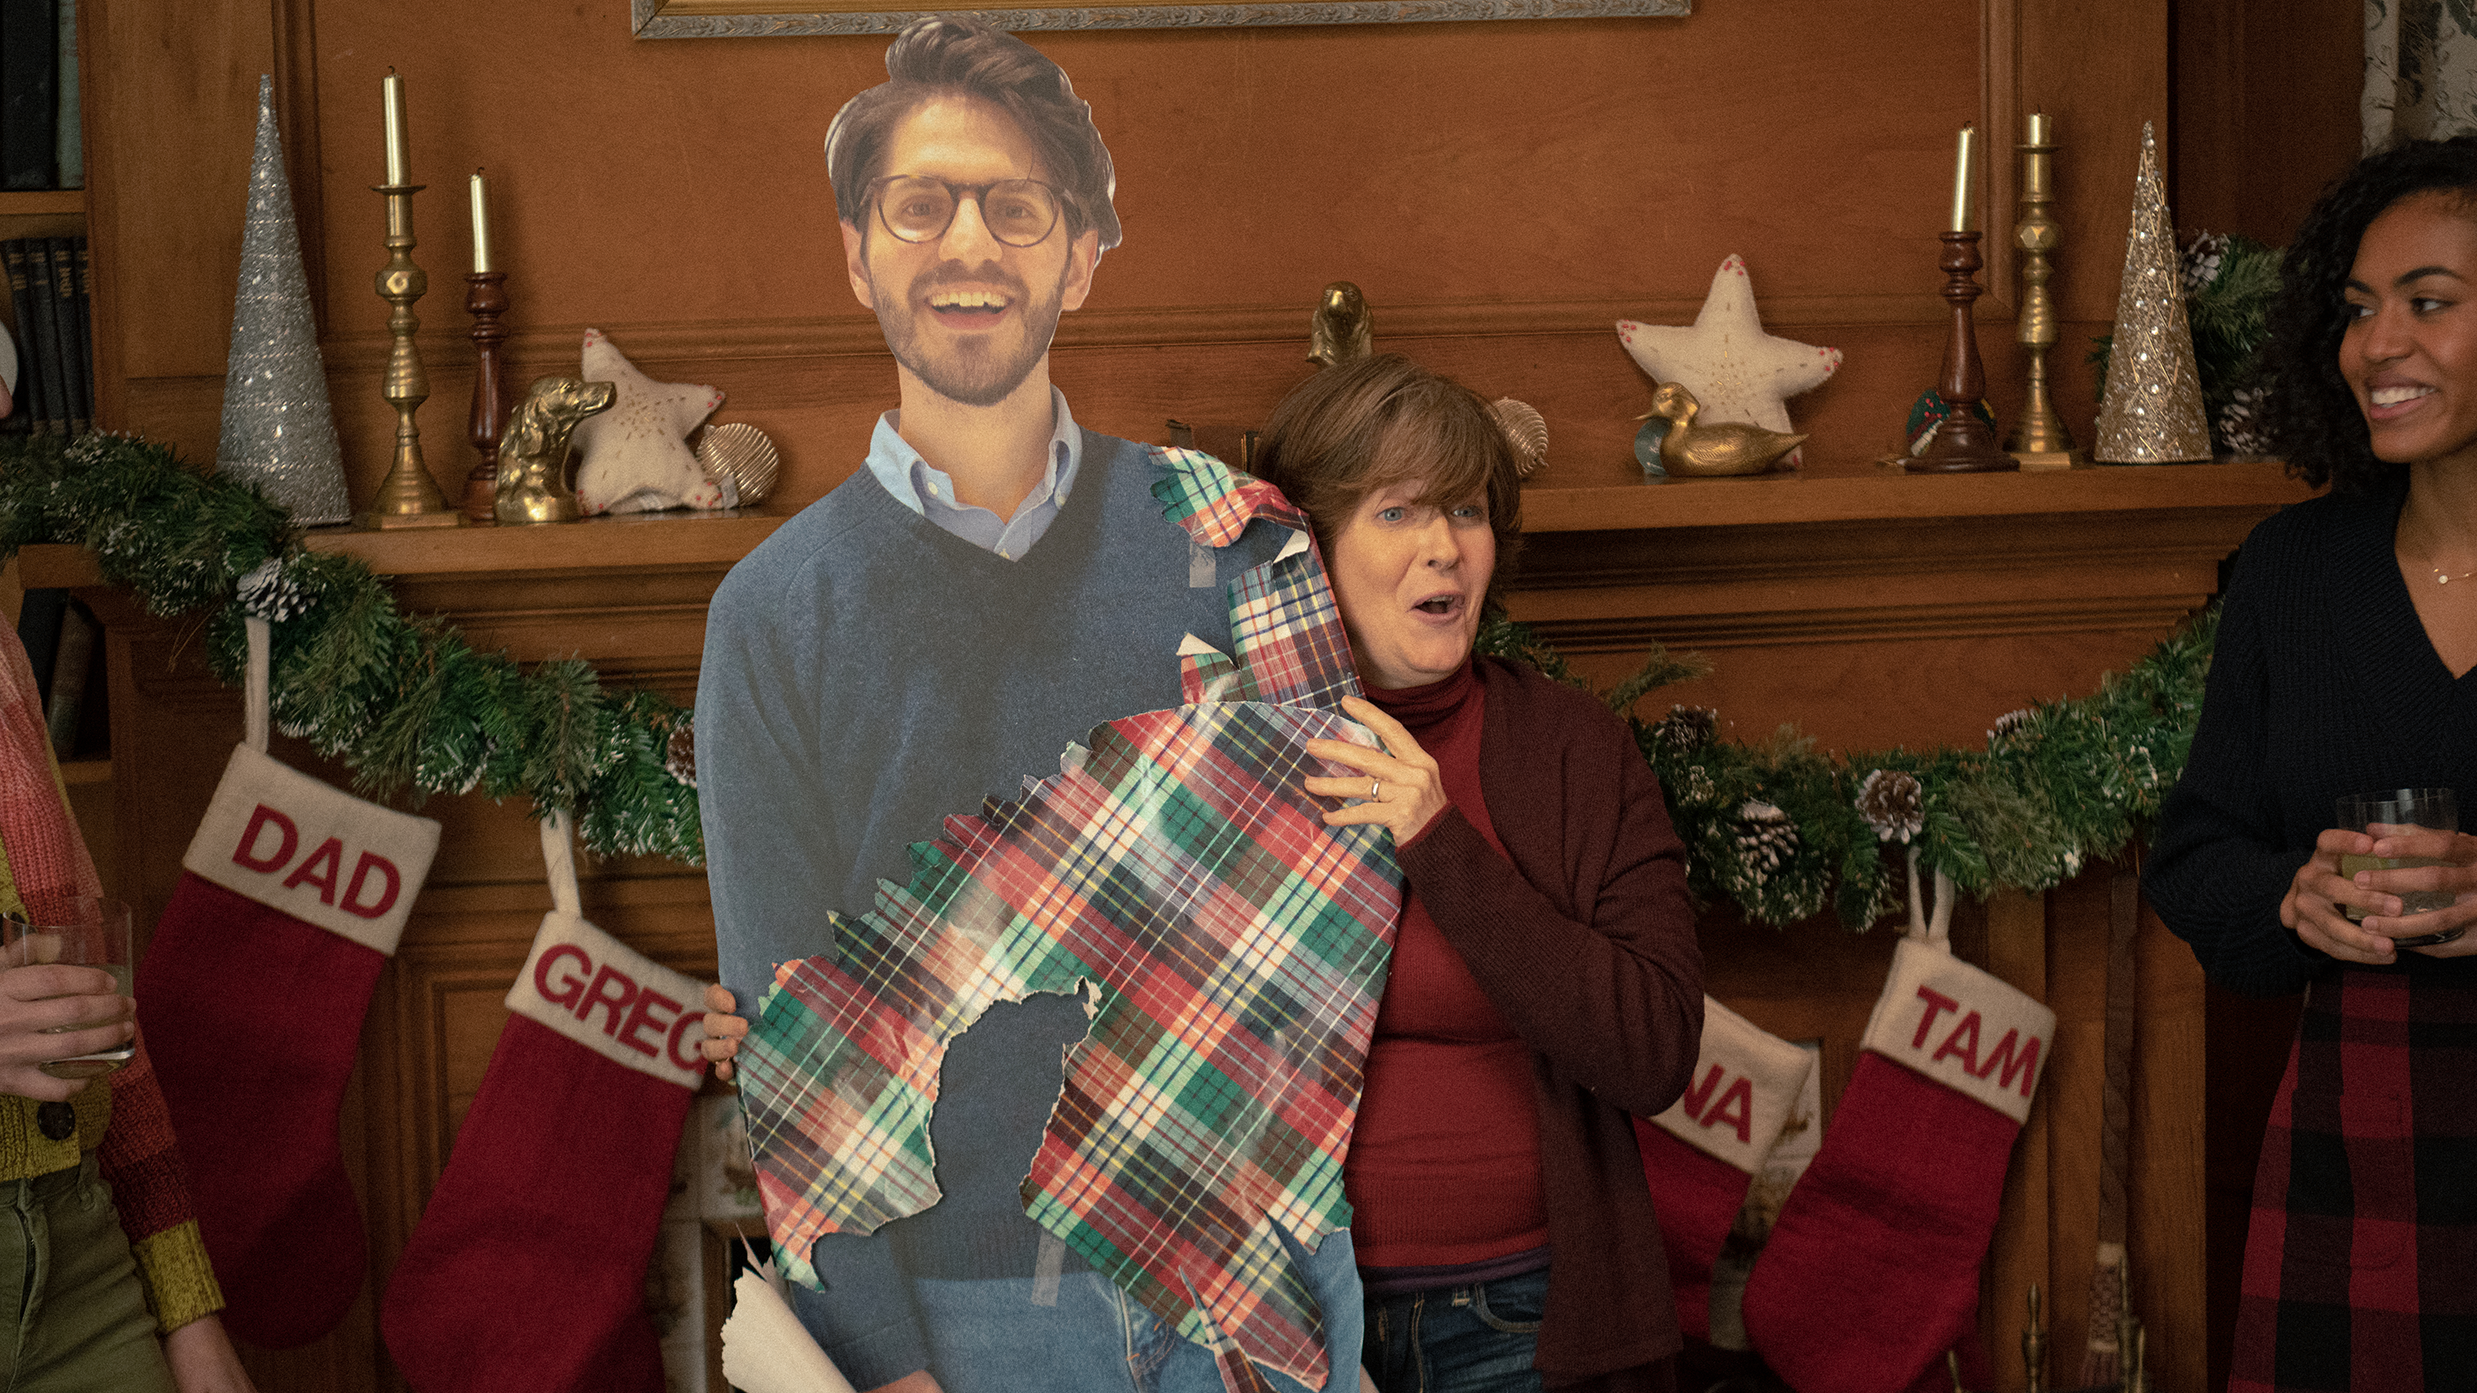 Can't visit family for the holidays? Send them a cardboard cutout of yourself